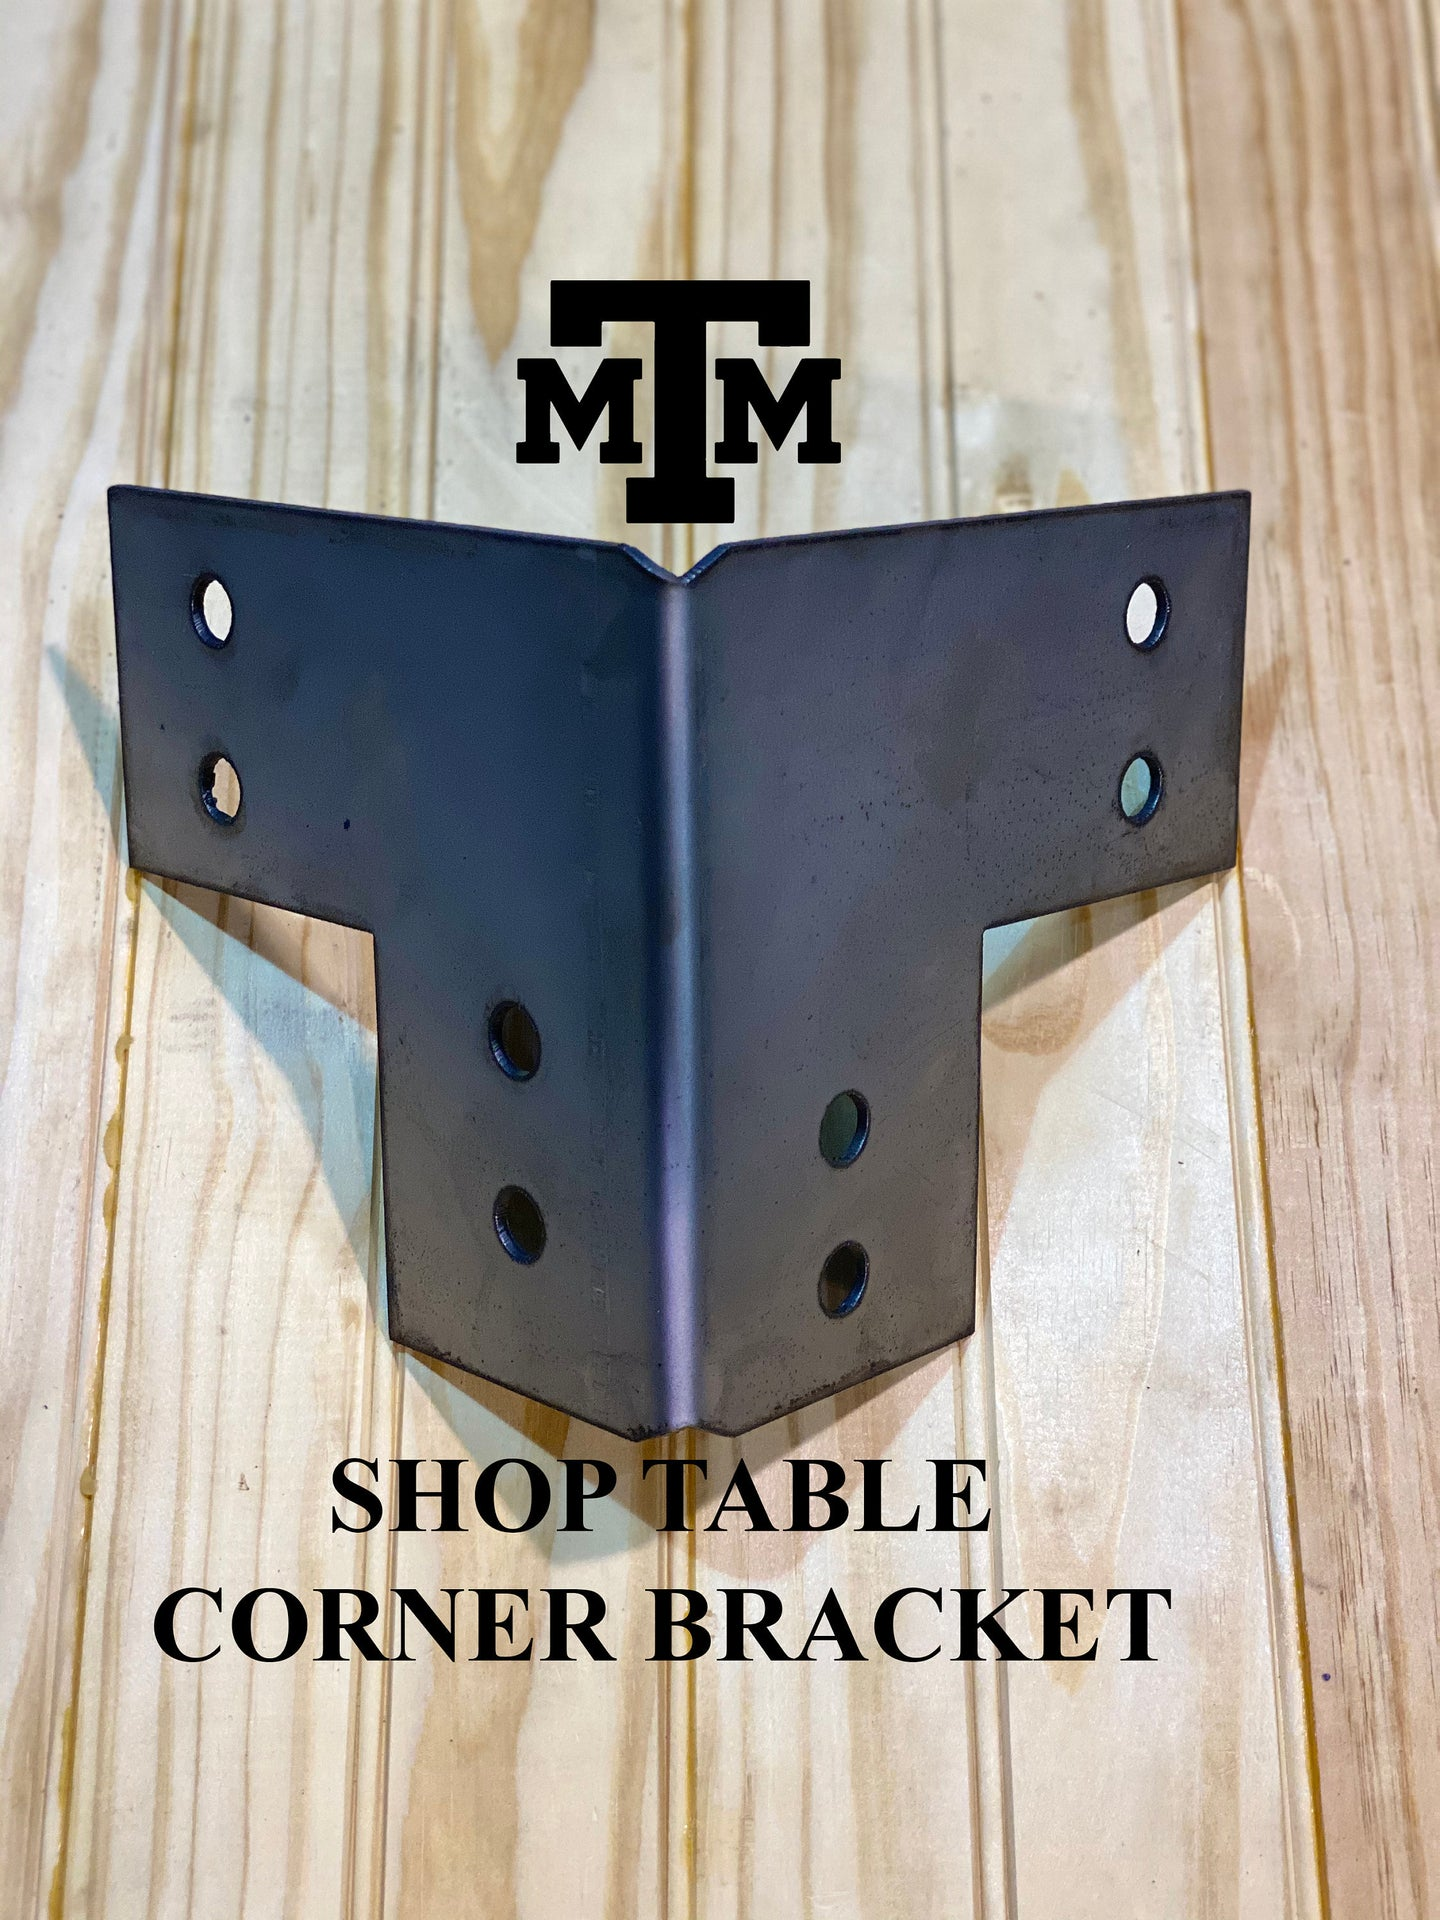 Shop Table DIY | Workbench Heavy Duty 4x4 Corner Brackets for 4 x 4 Posts | Made In the USA!